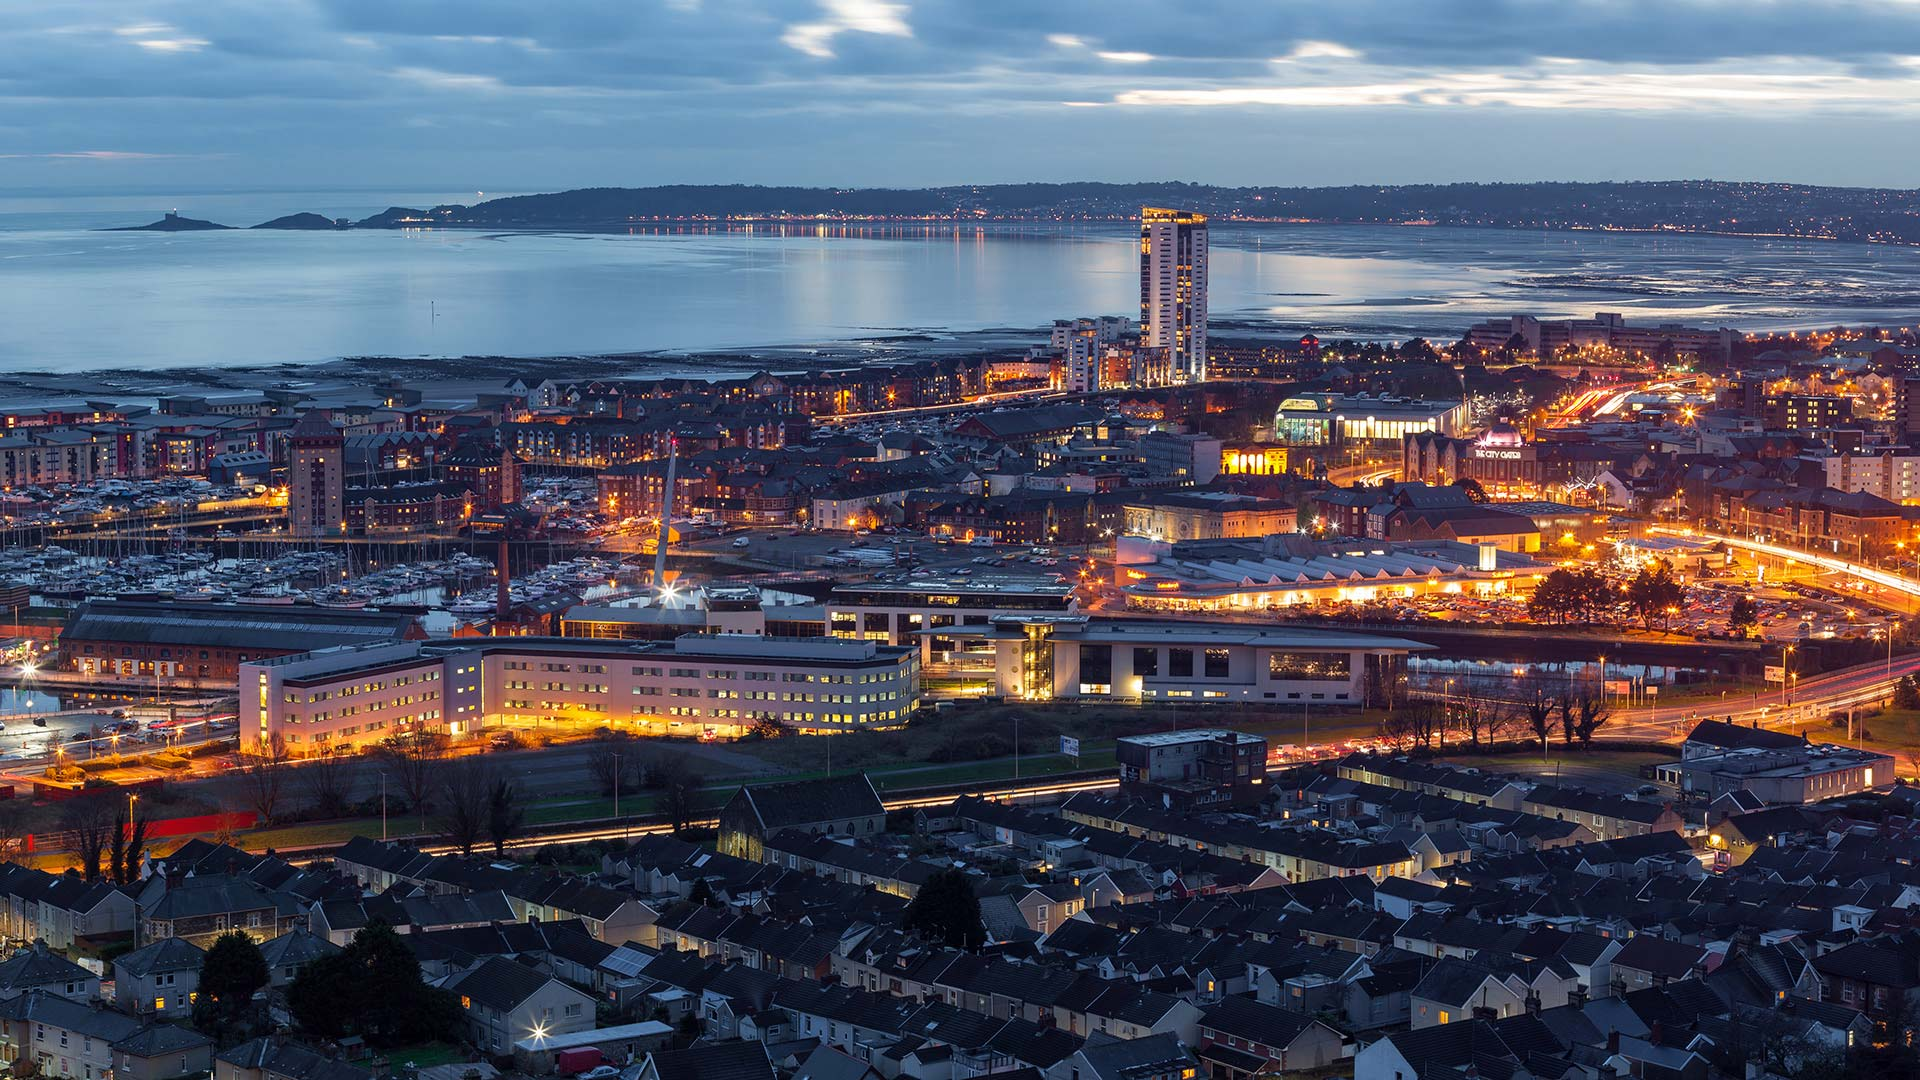 Panorama to illustrate dating in swansea